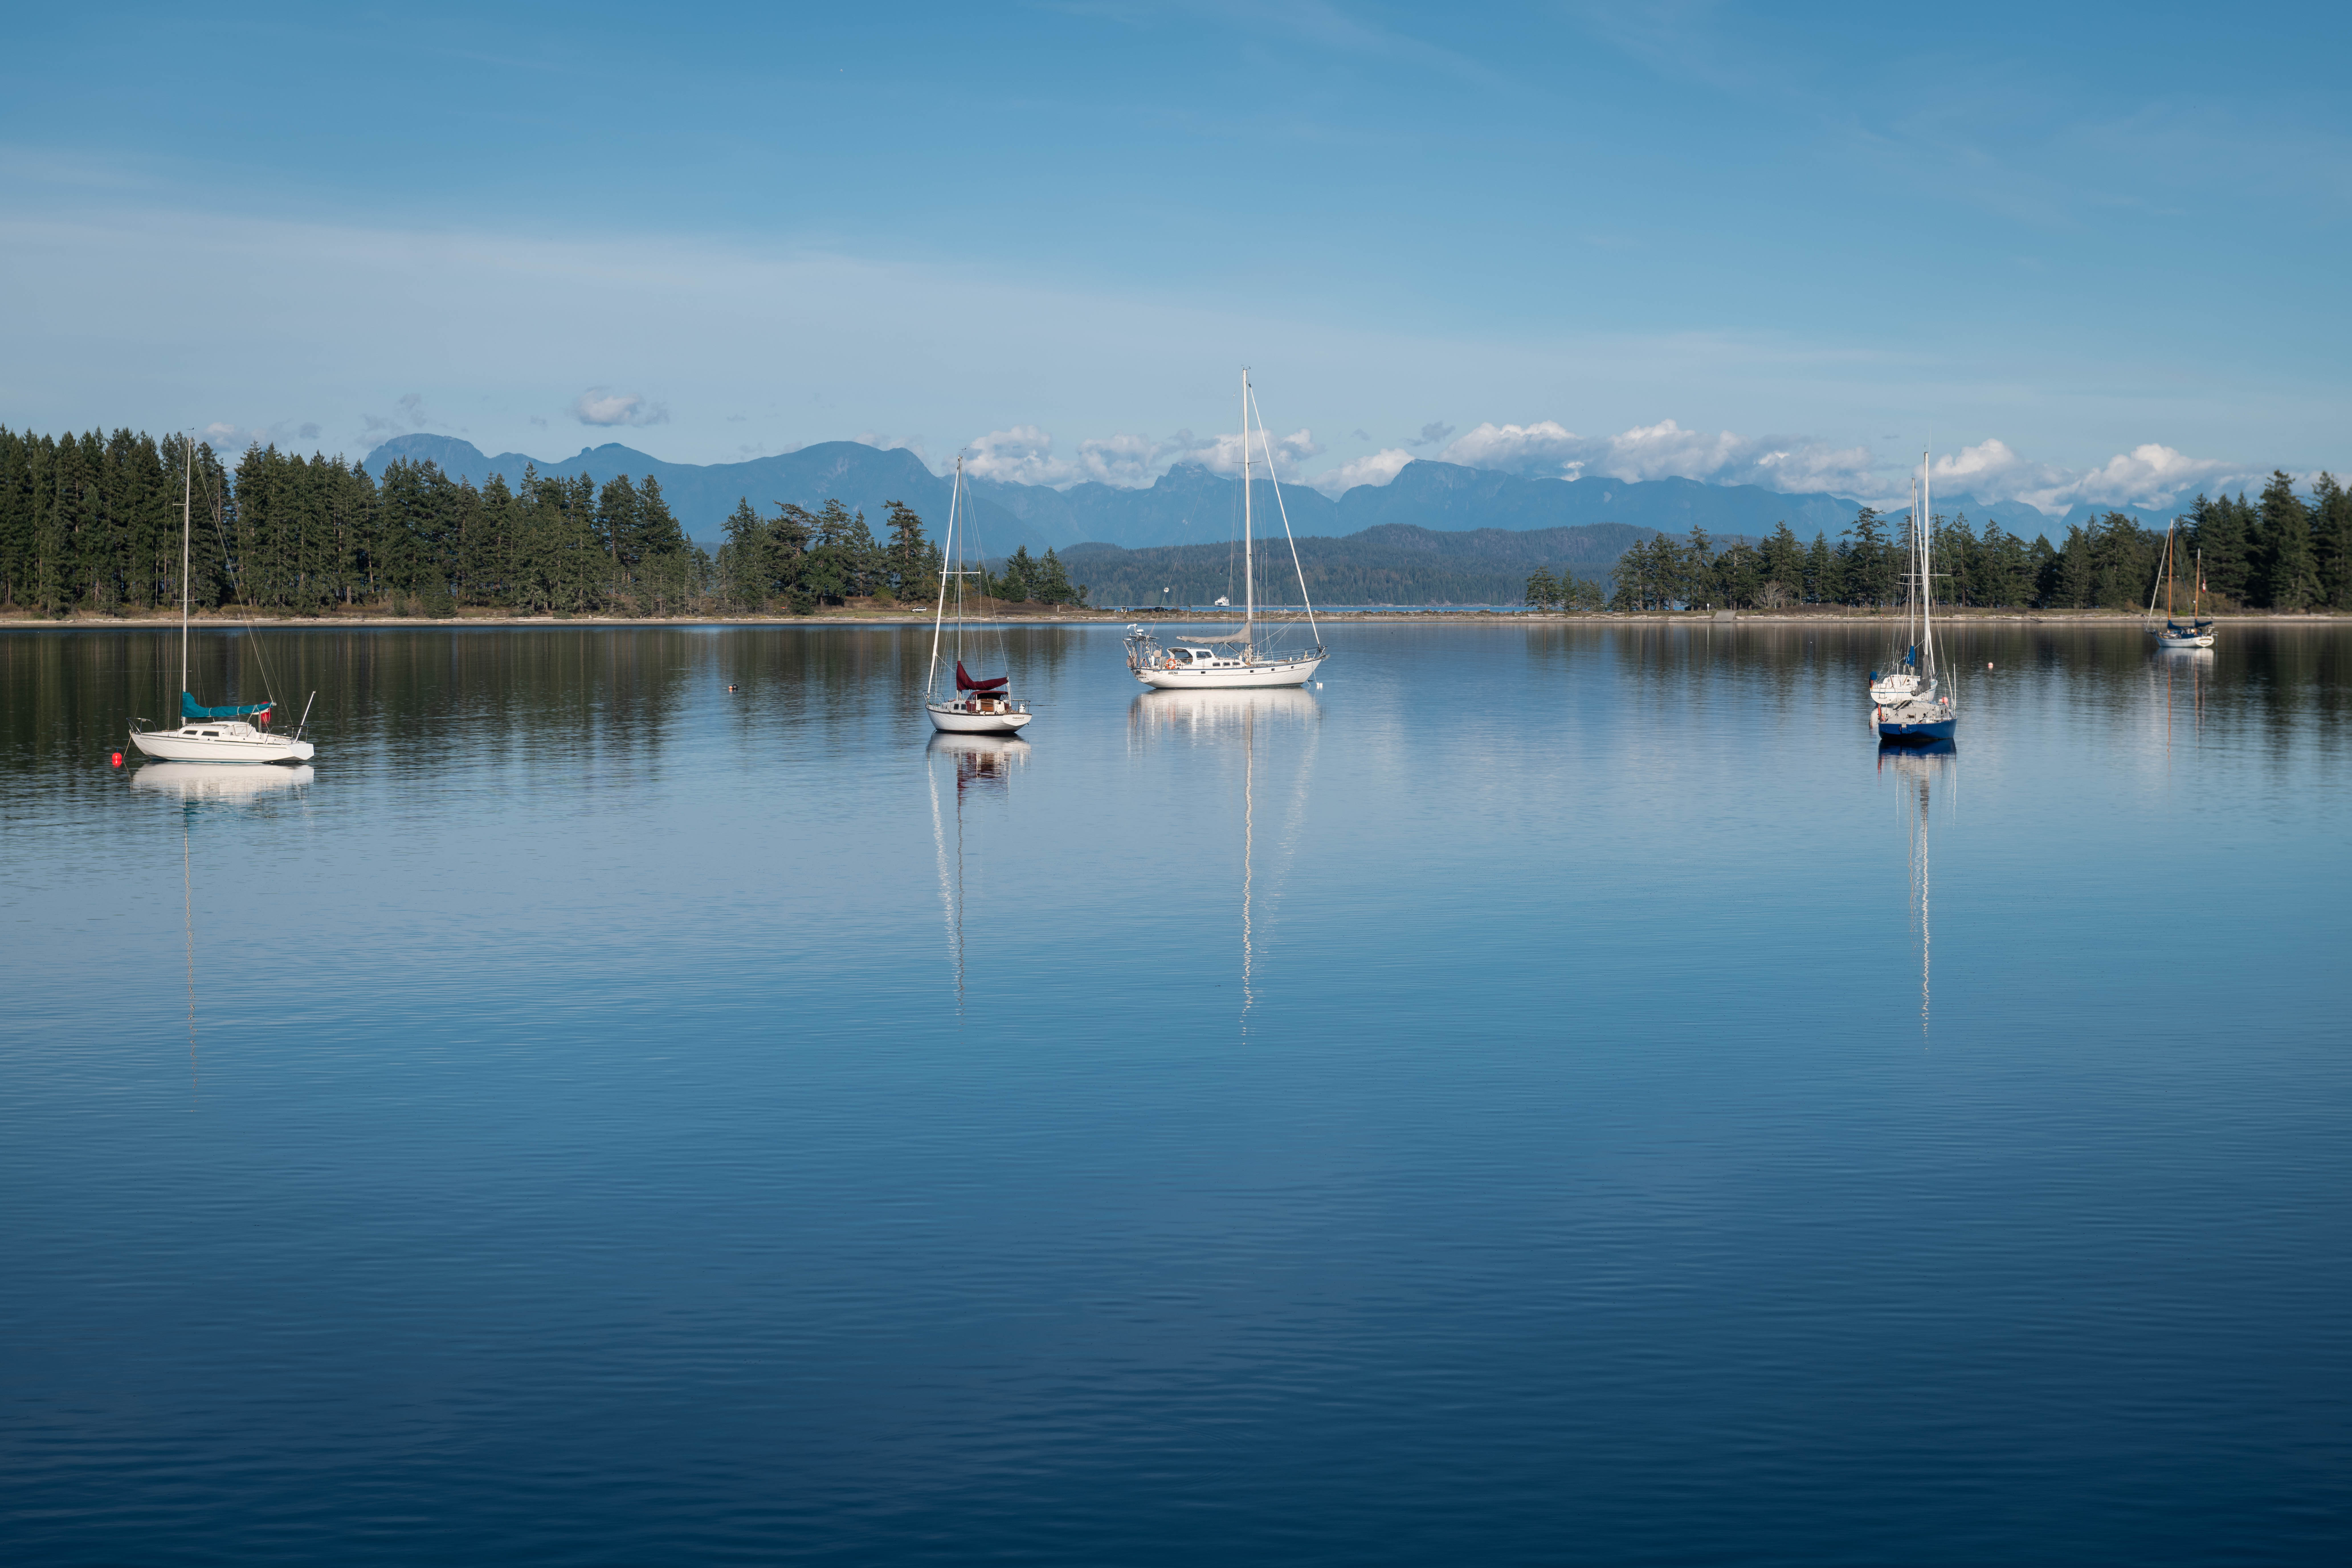 Drew Harbour at Rebecca Spit on Quadra Island, BC